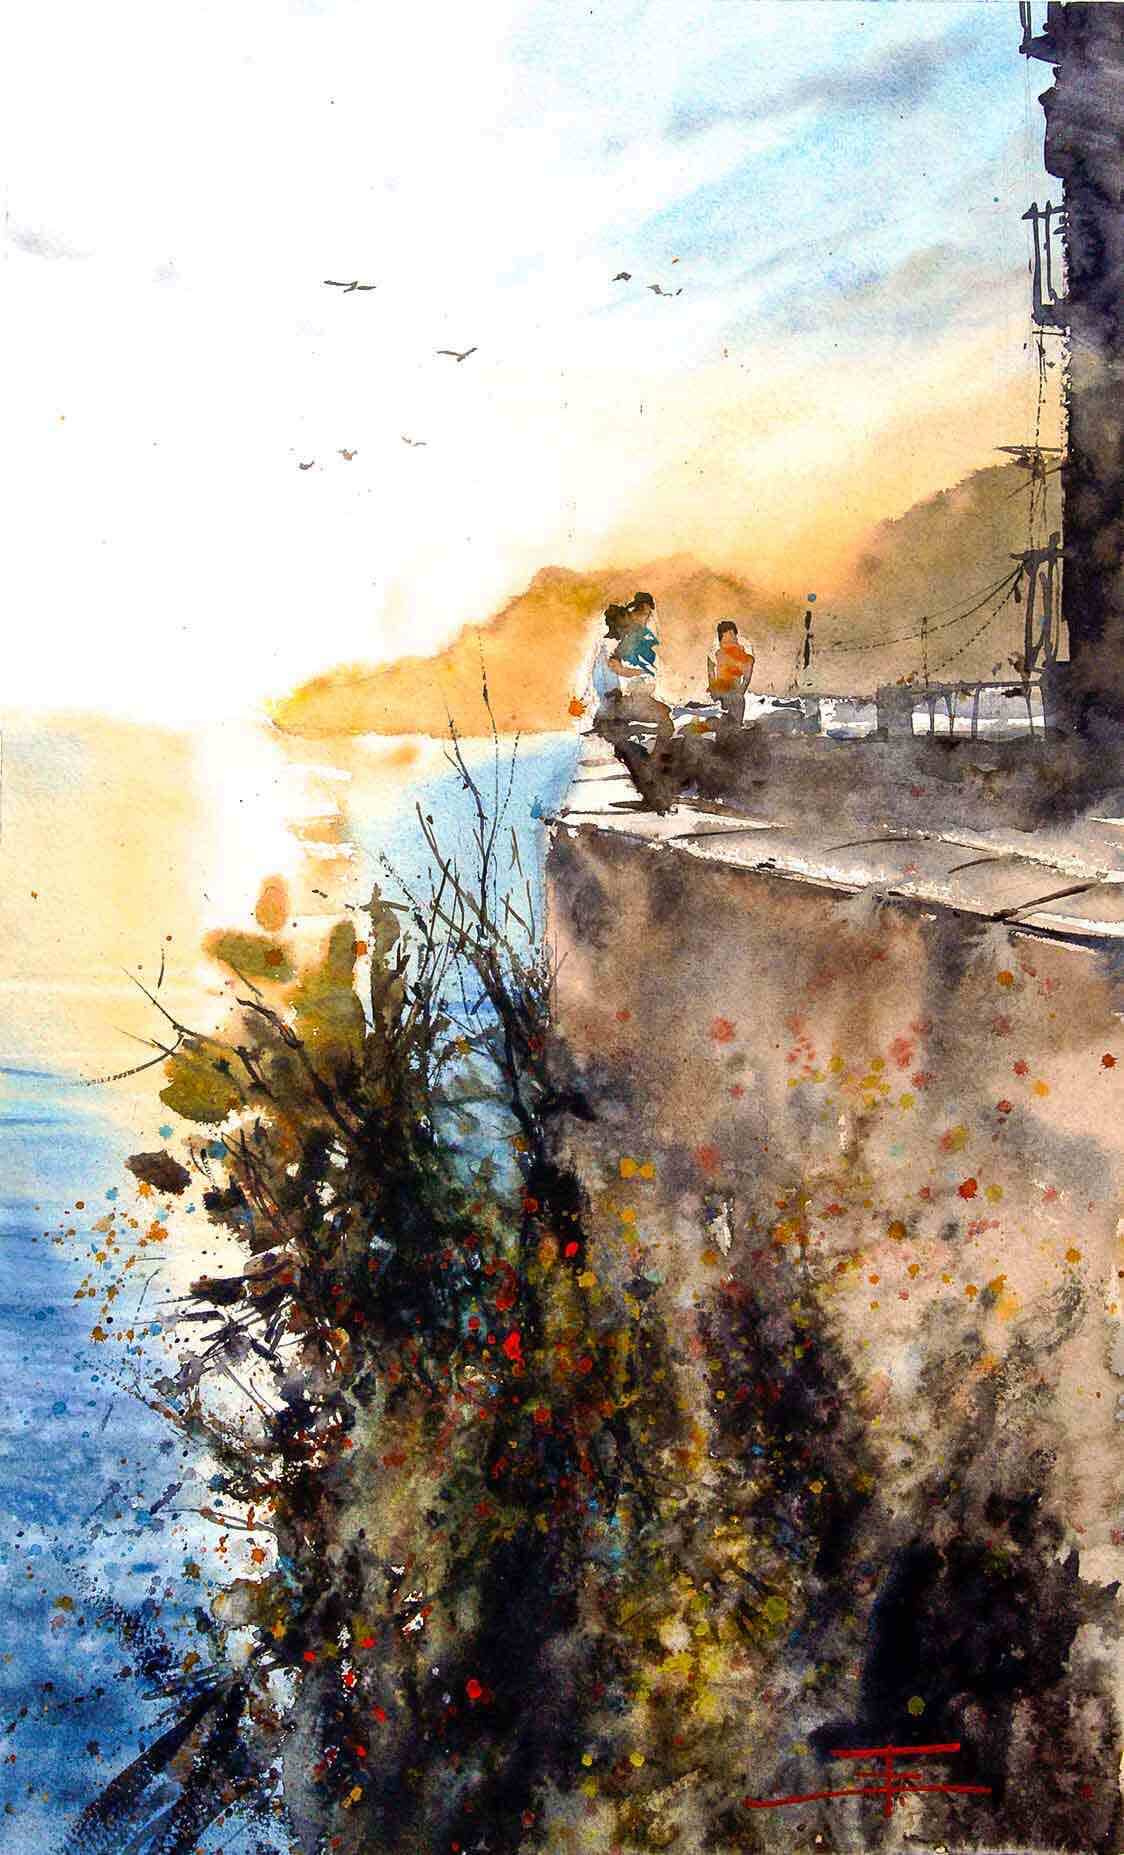 Emmanuele Cammarano Acquerellista - watercolor artist watercolor paintings - watercolorist and tutor - demo tutorial